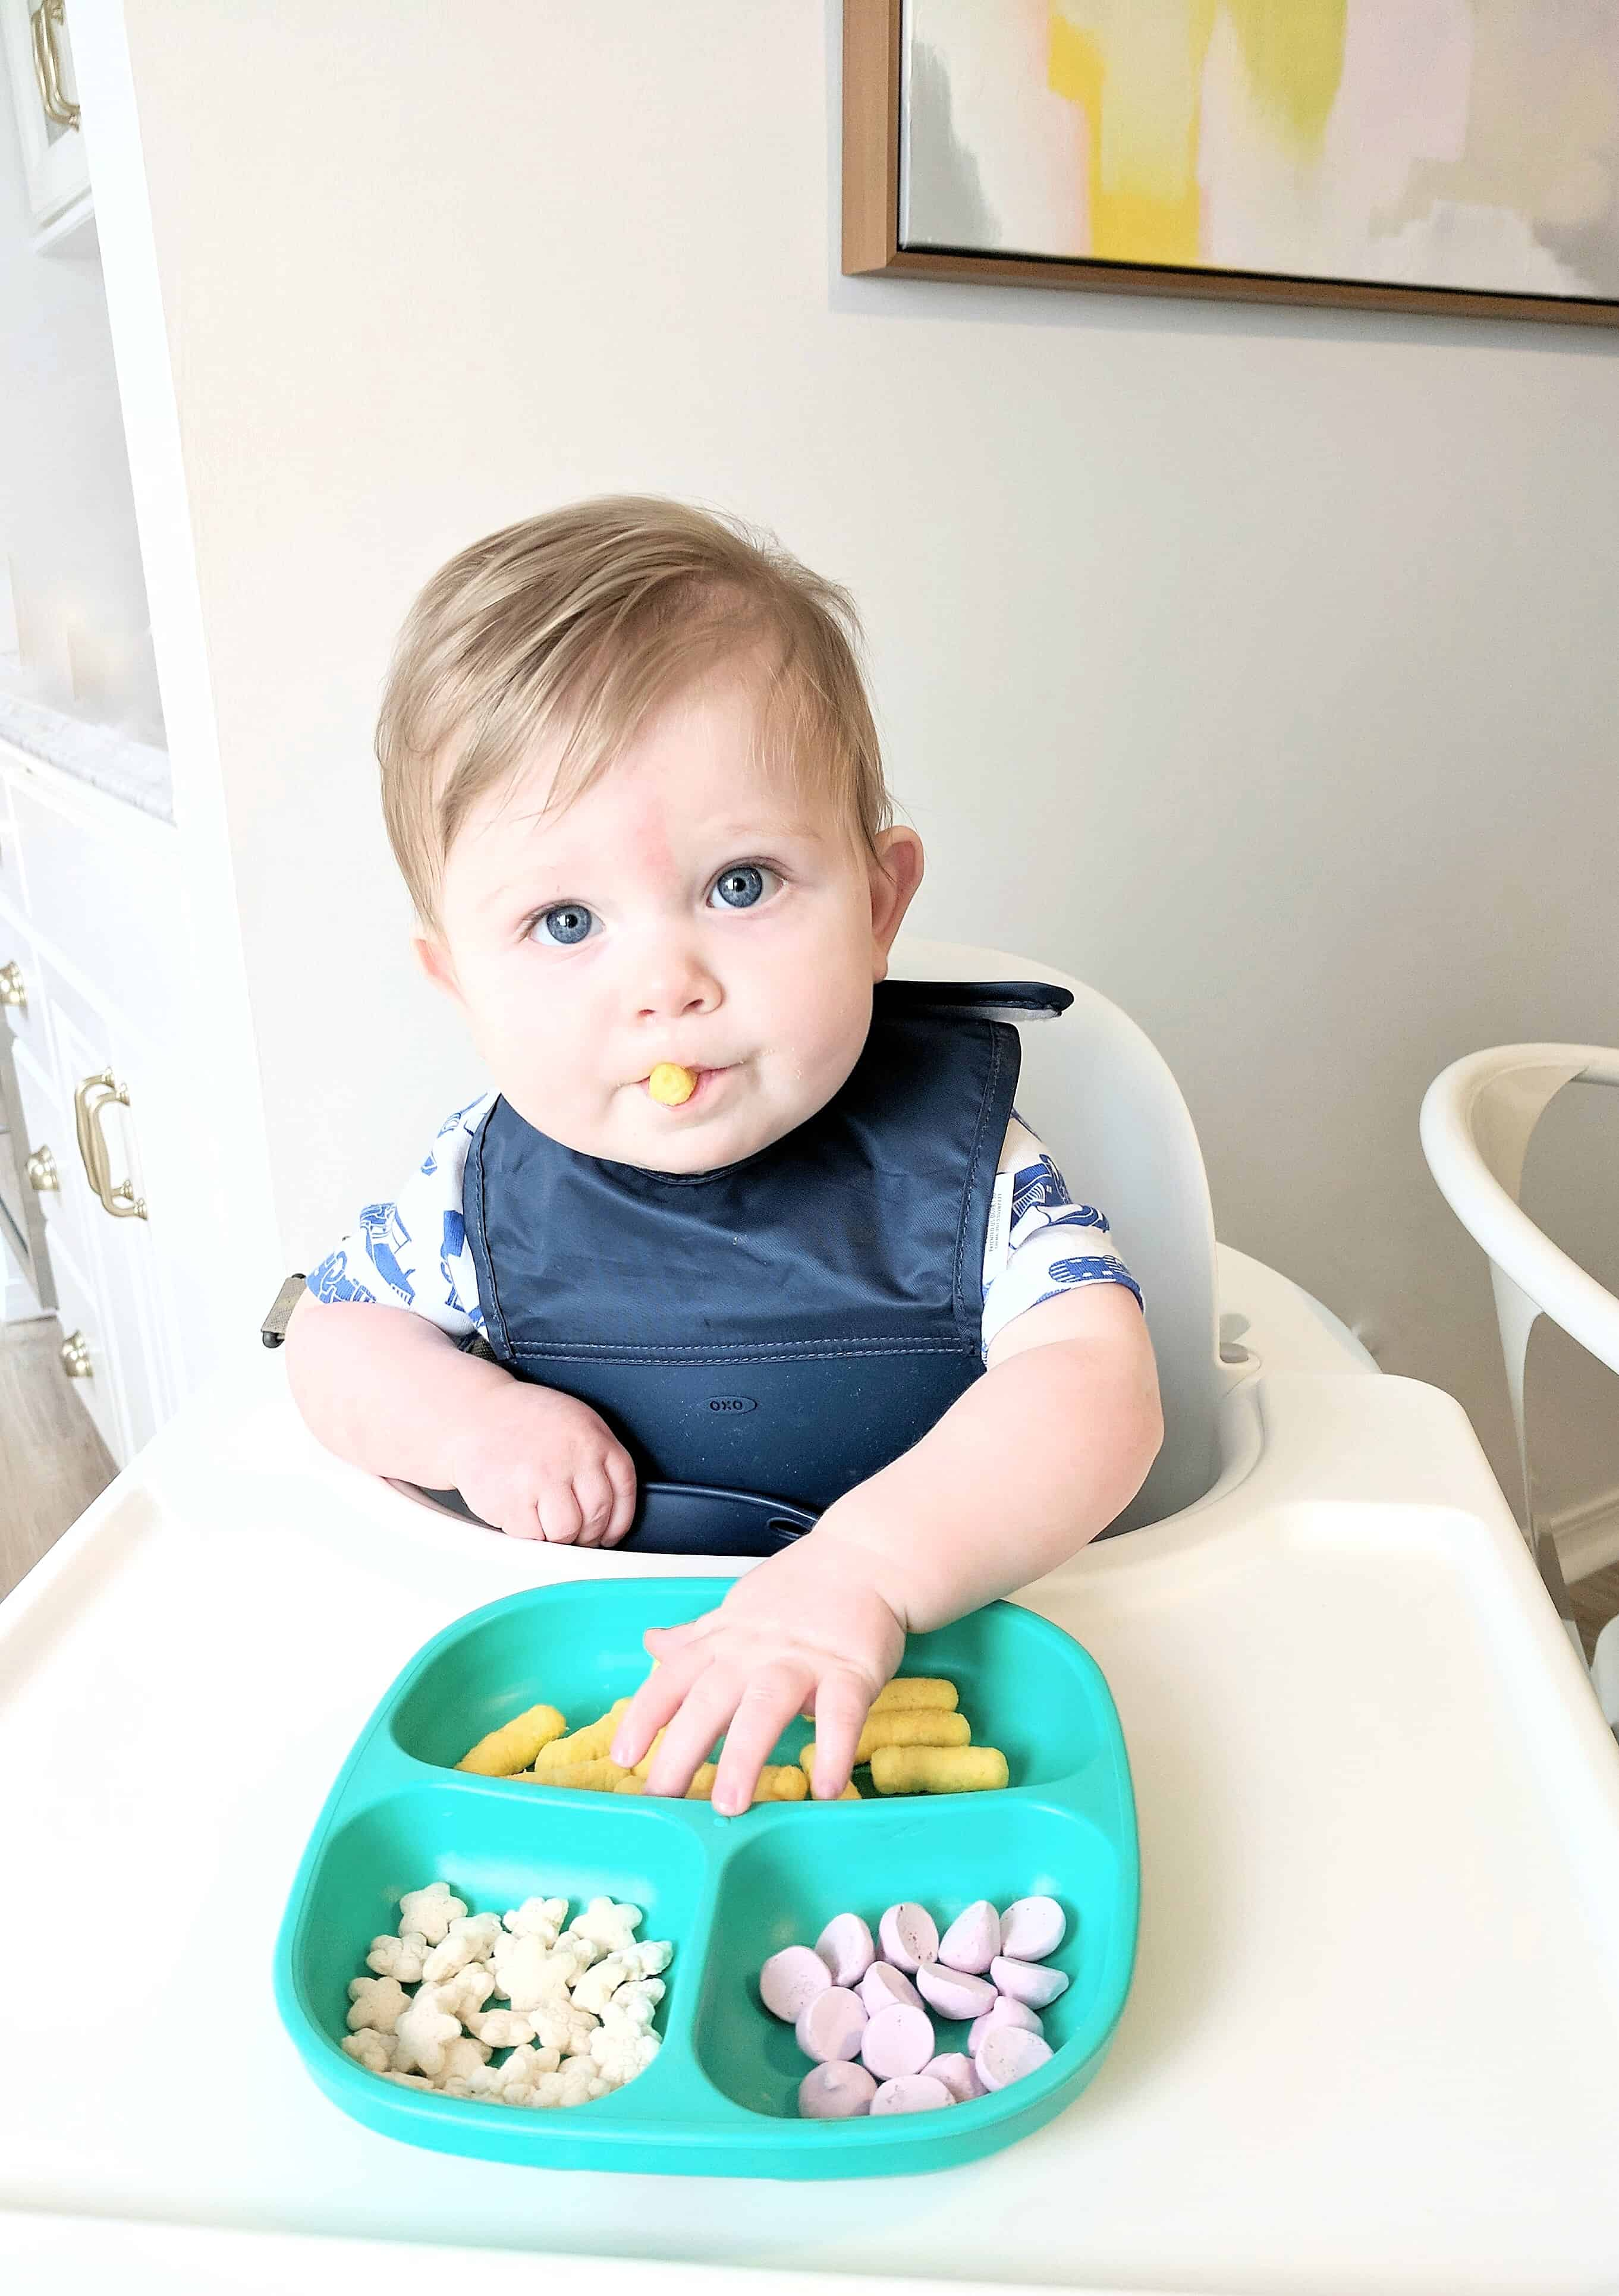 baby boy eating a plate of snacks | Feeding Babies On The Go